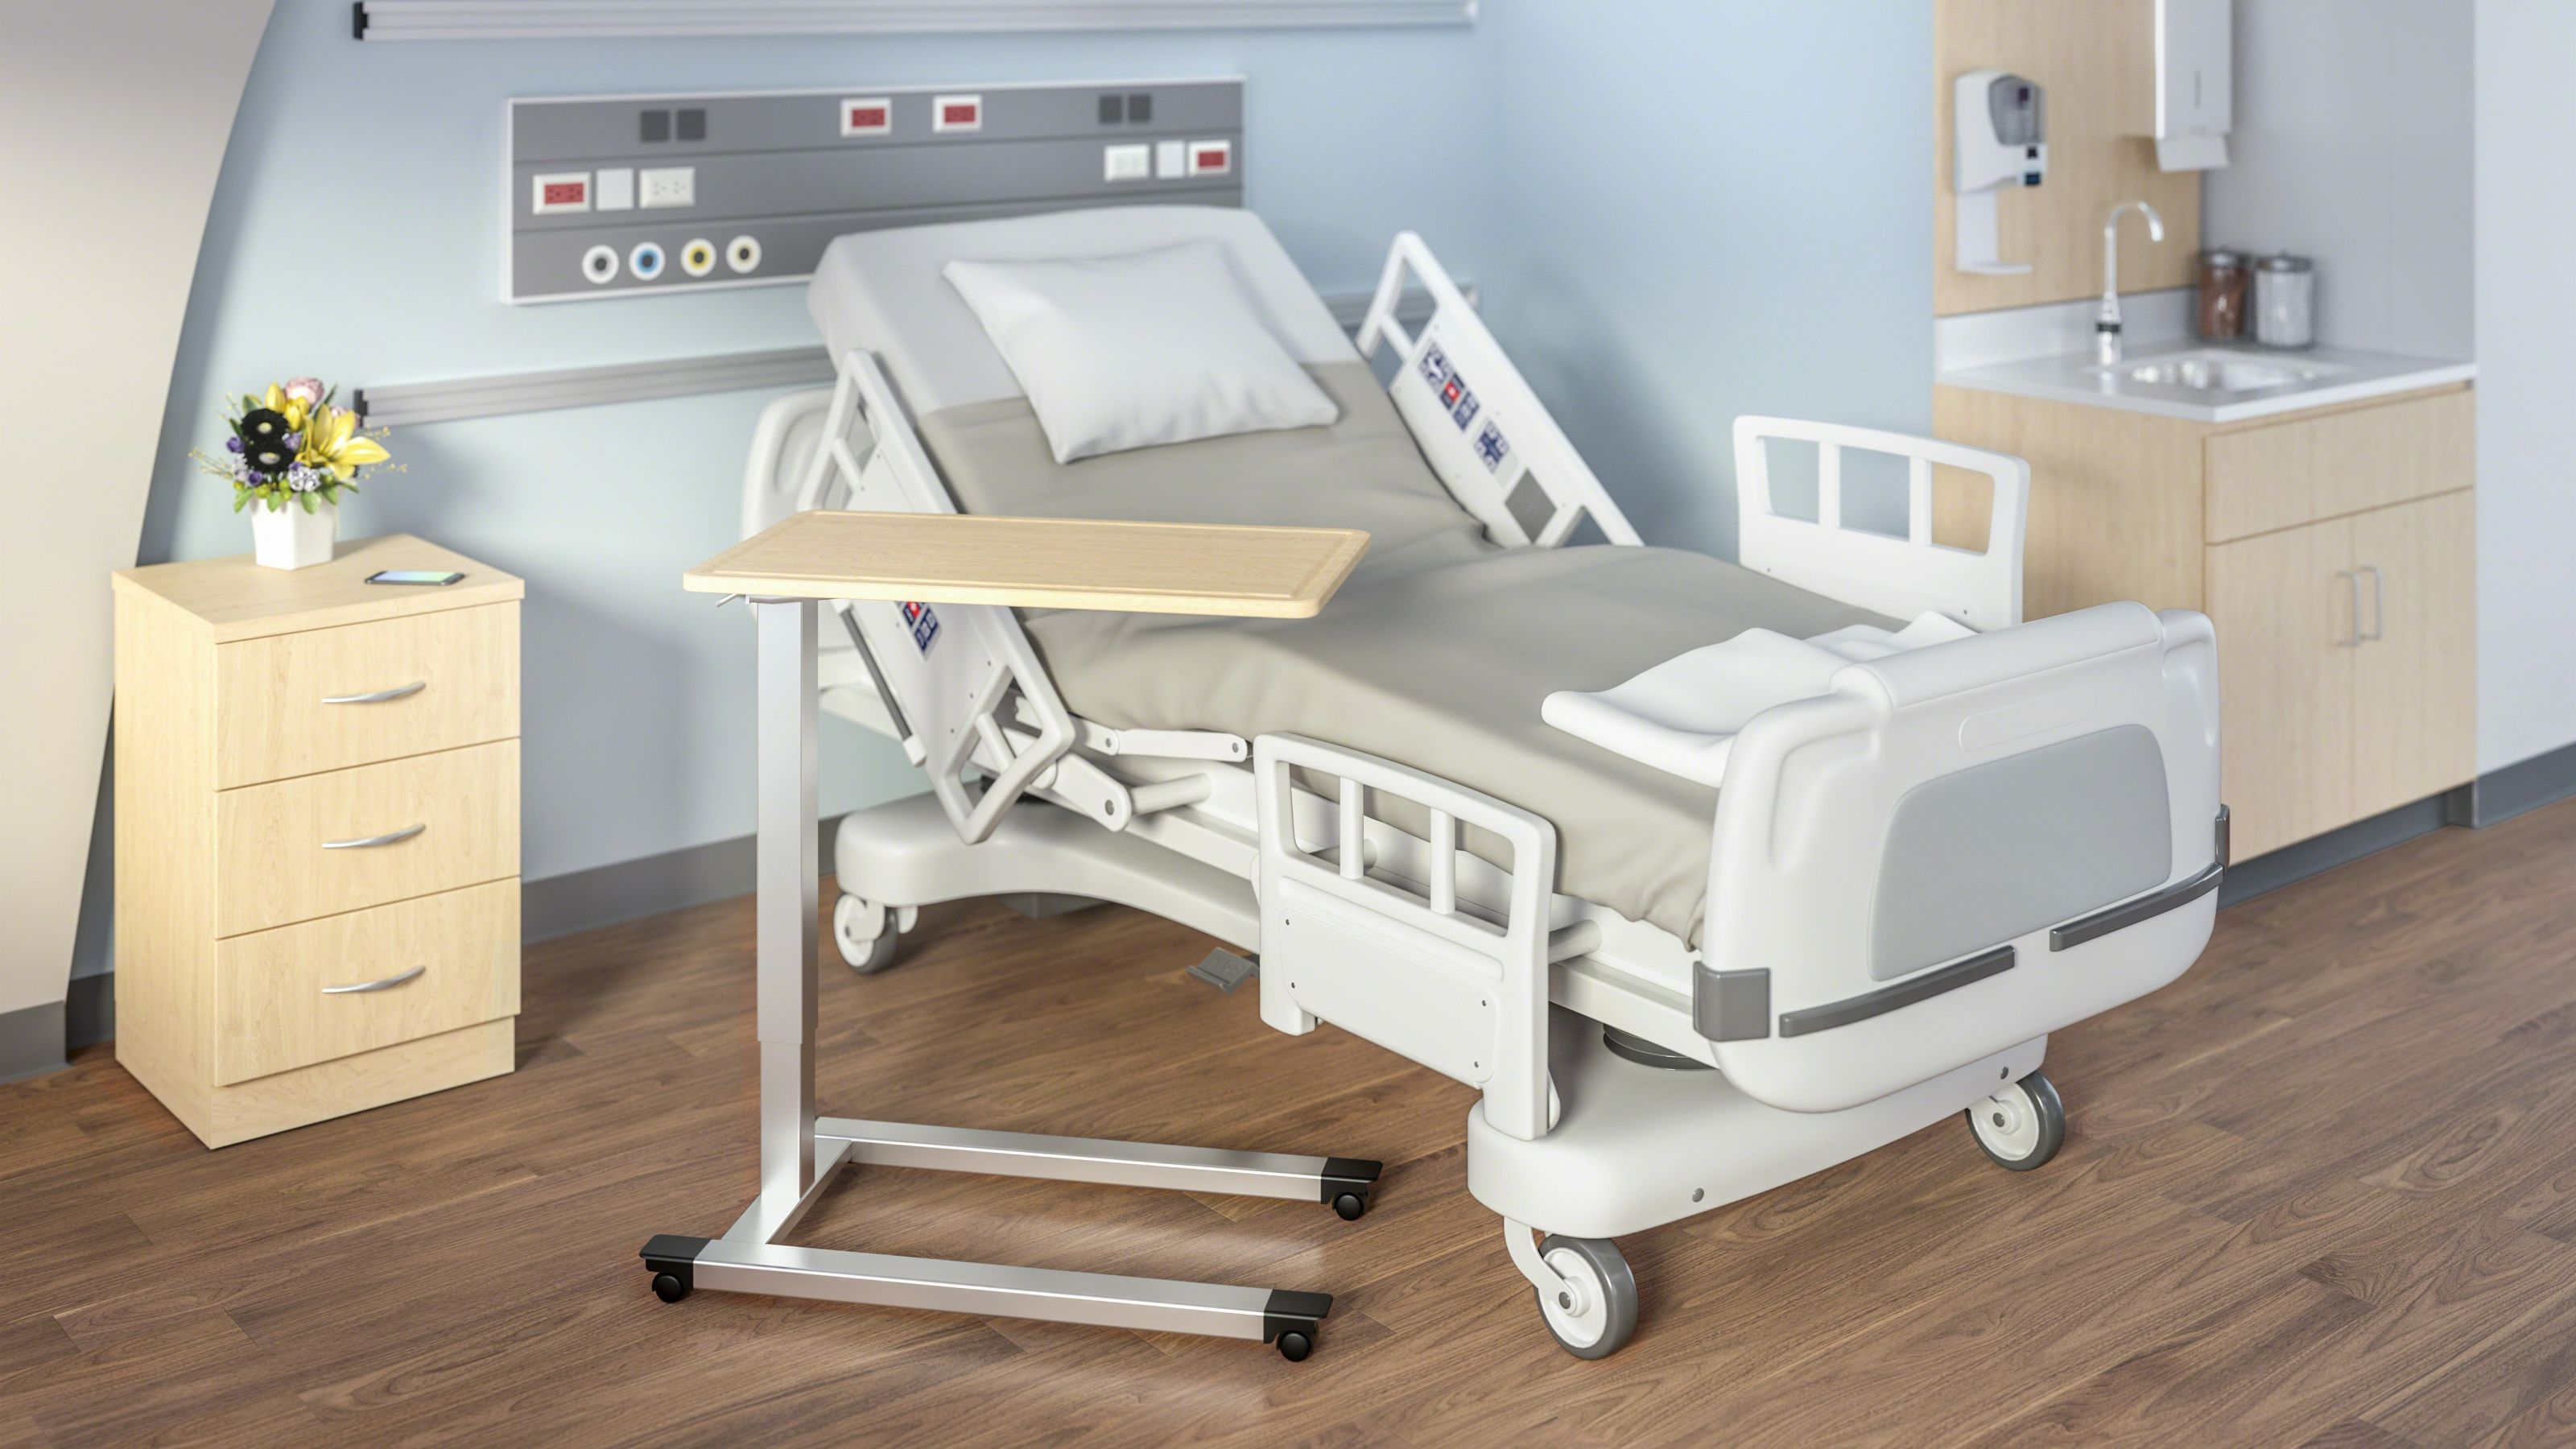 Overbed Tables & Healthcare Furniture Steelcase in 2020